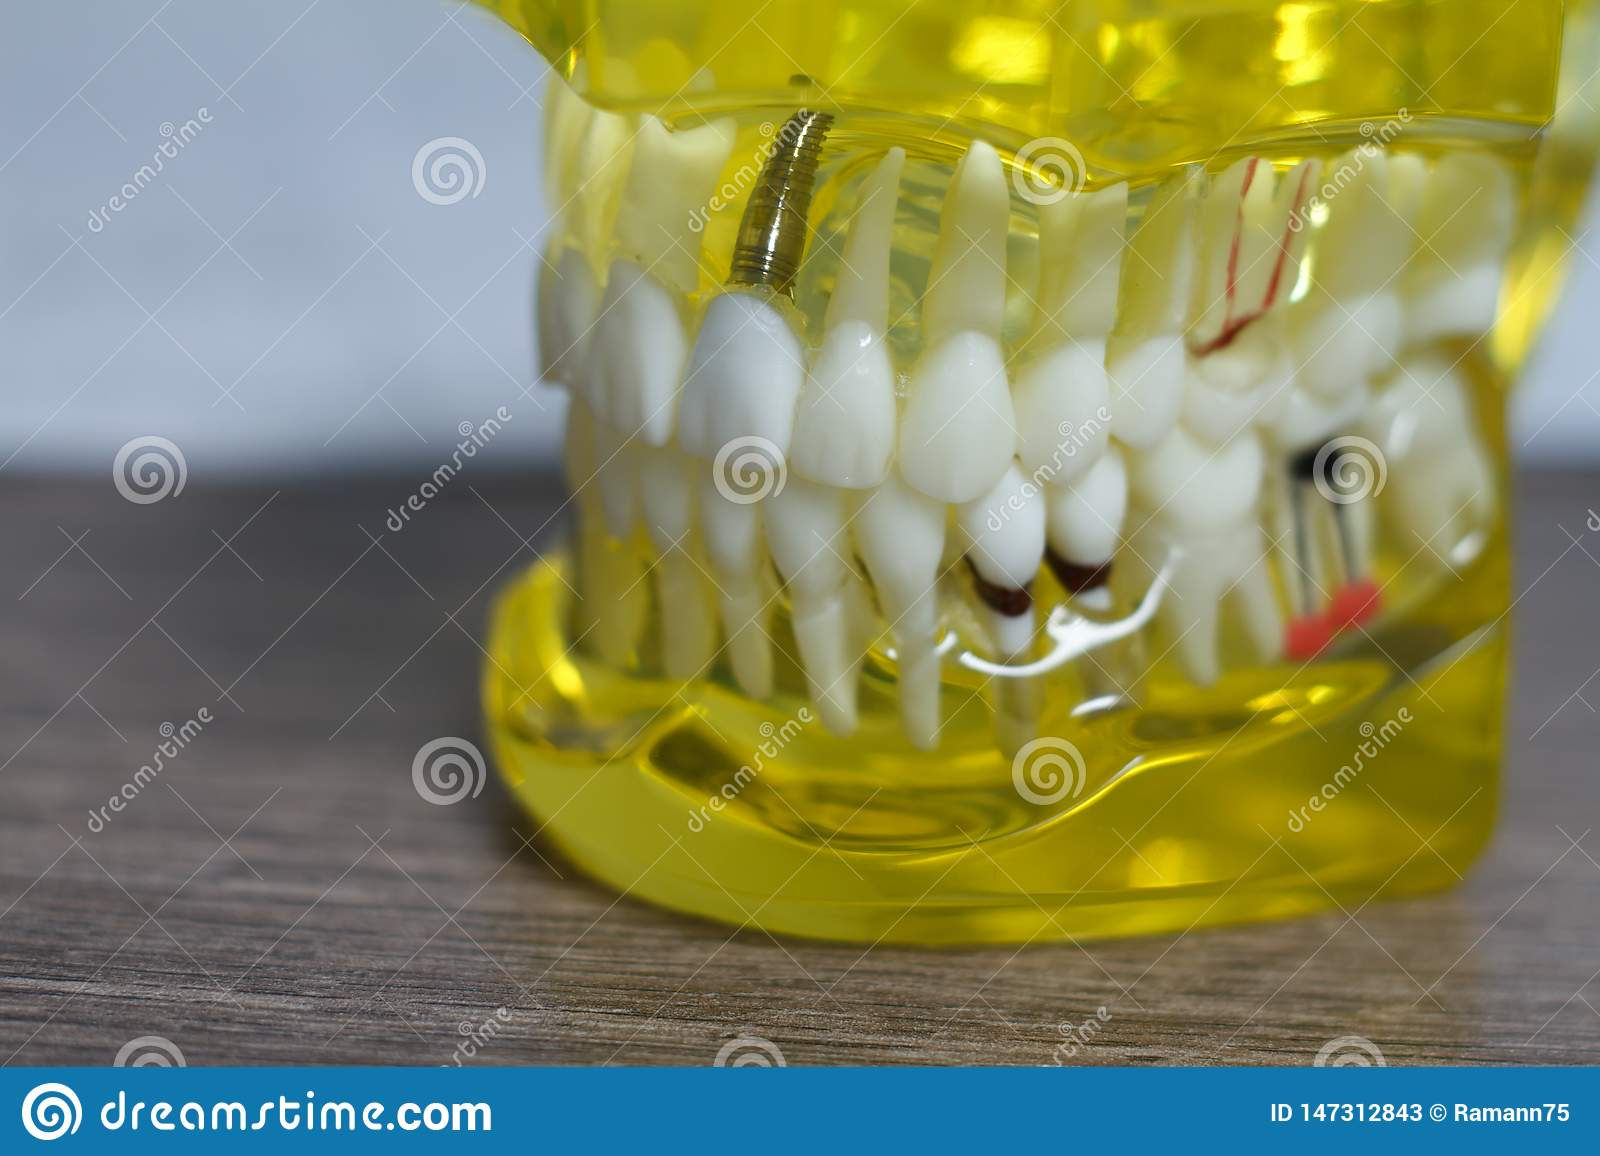 The dental tooth dentistry student learning teaching model showing teeth, roots, gums, gum disease